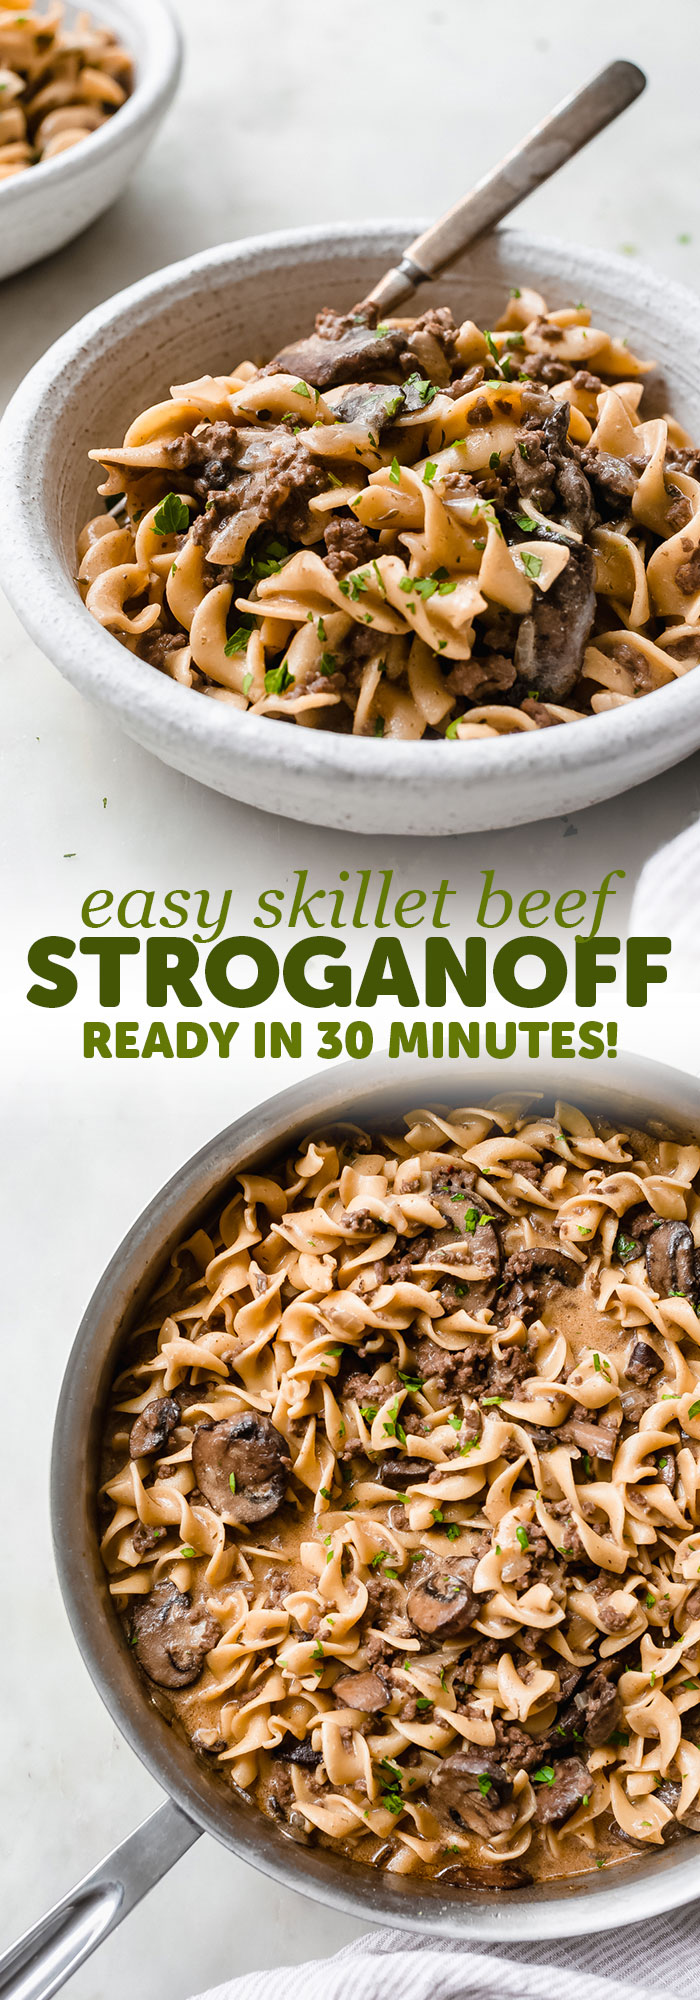 30-Minute Skillet Ground Beef Stroganoff - loaded with lots of flavor, this ground beef stroganoff is ready in 30 minutes and is sure to be a crowd pleaser! #stroganoff #onepotstroganoff #skilletstroganoff #groundbeefstroganoff #onepot #onepan #dinner | Littlespicejar.com